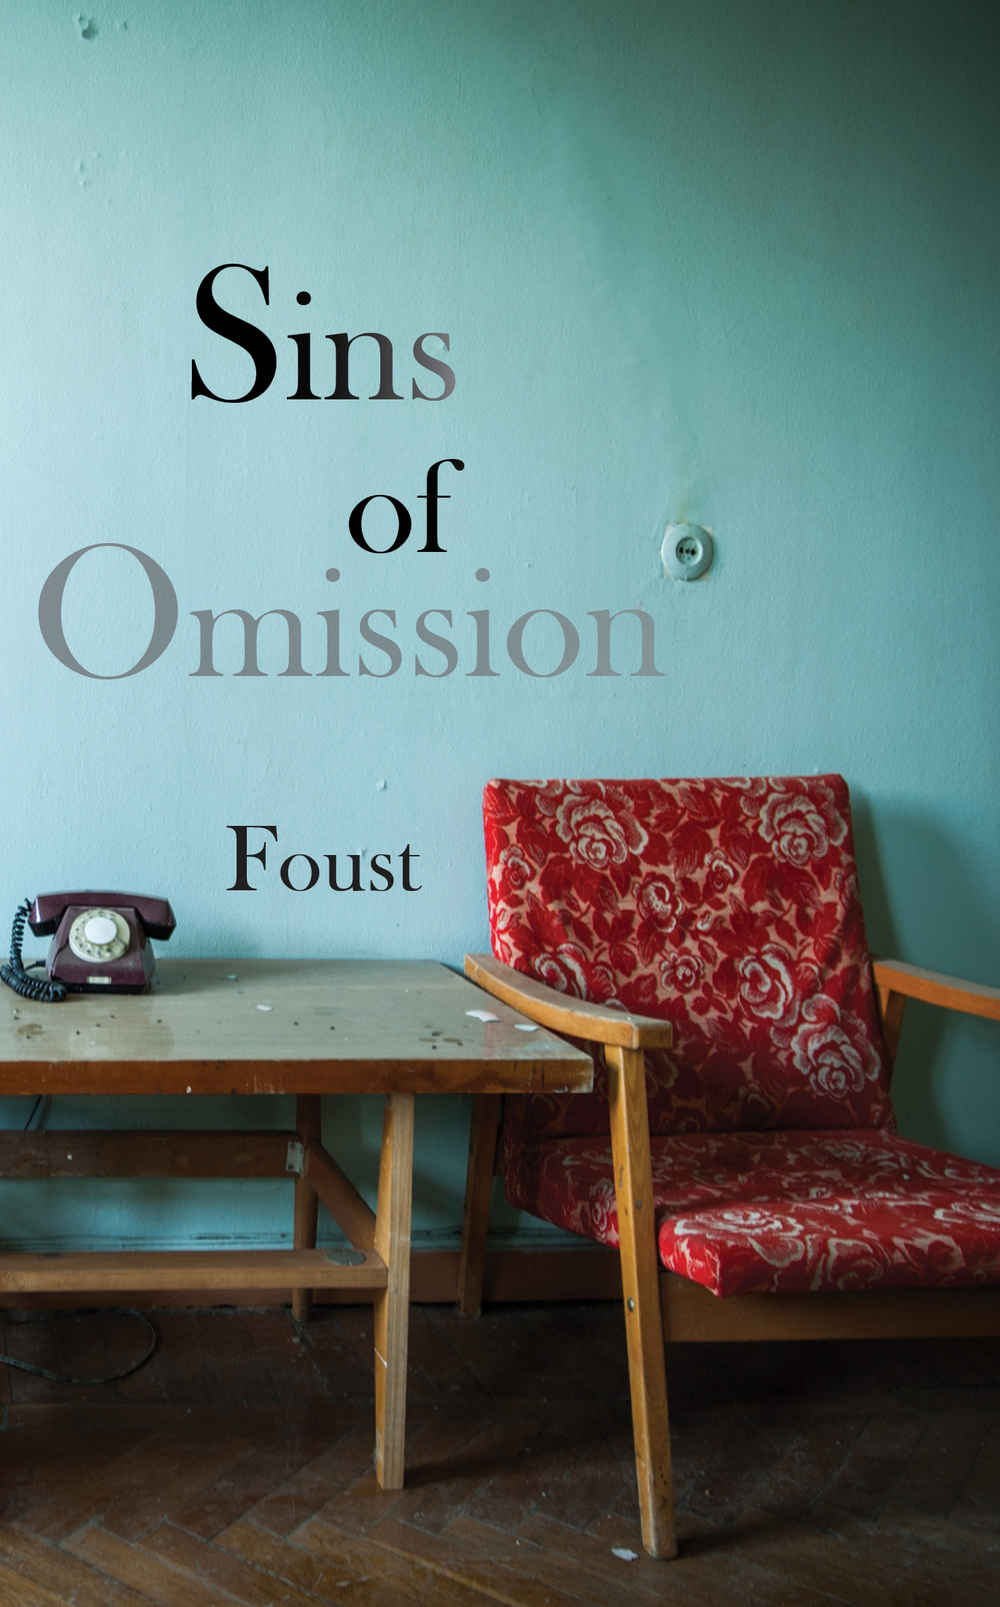 Sins of Omission: 42 short stories by Foust